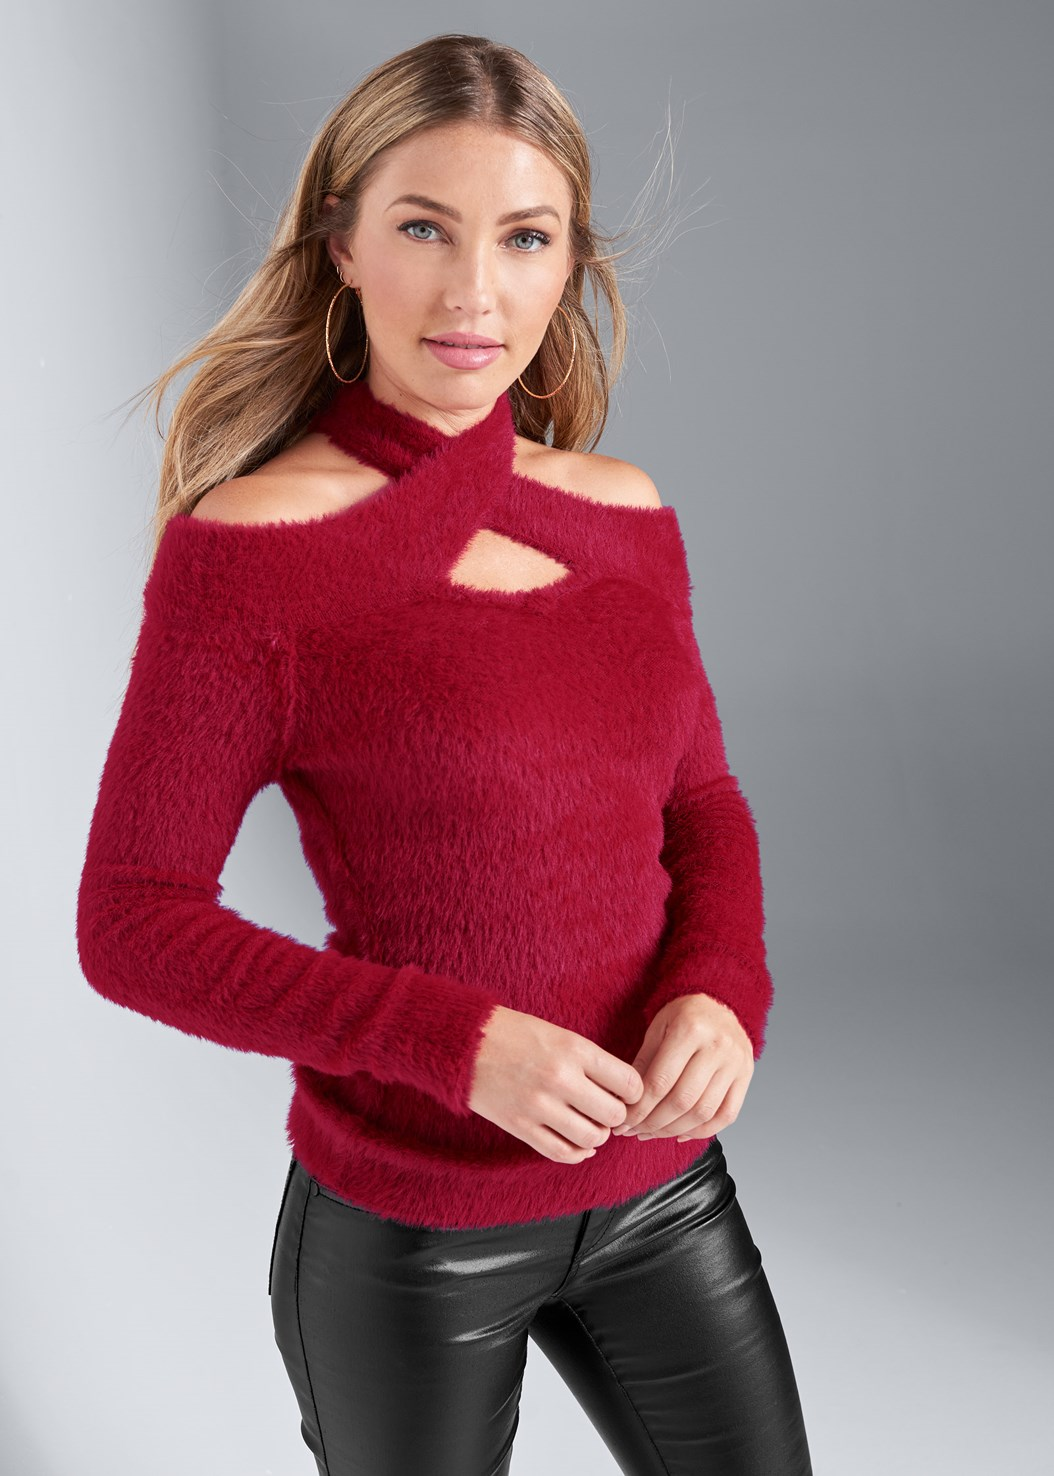 Cozy Cross Neck Sweater,Faux Leather Pants